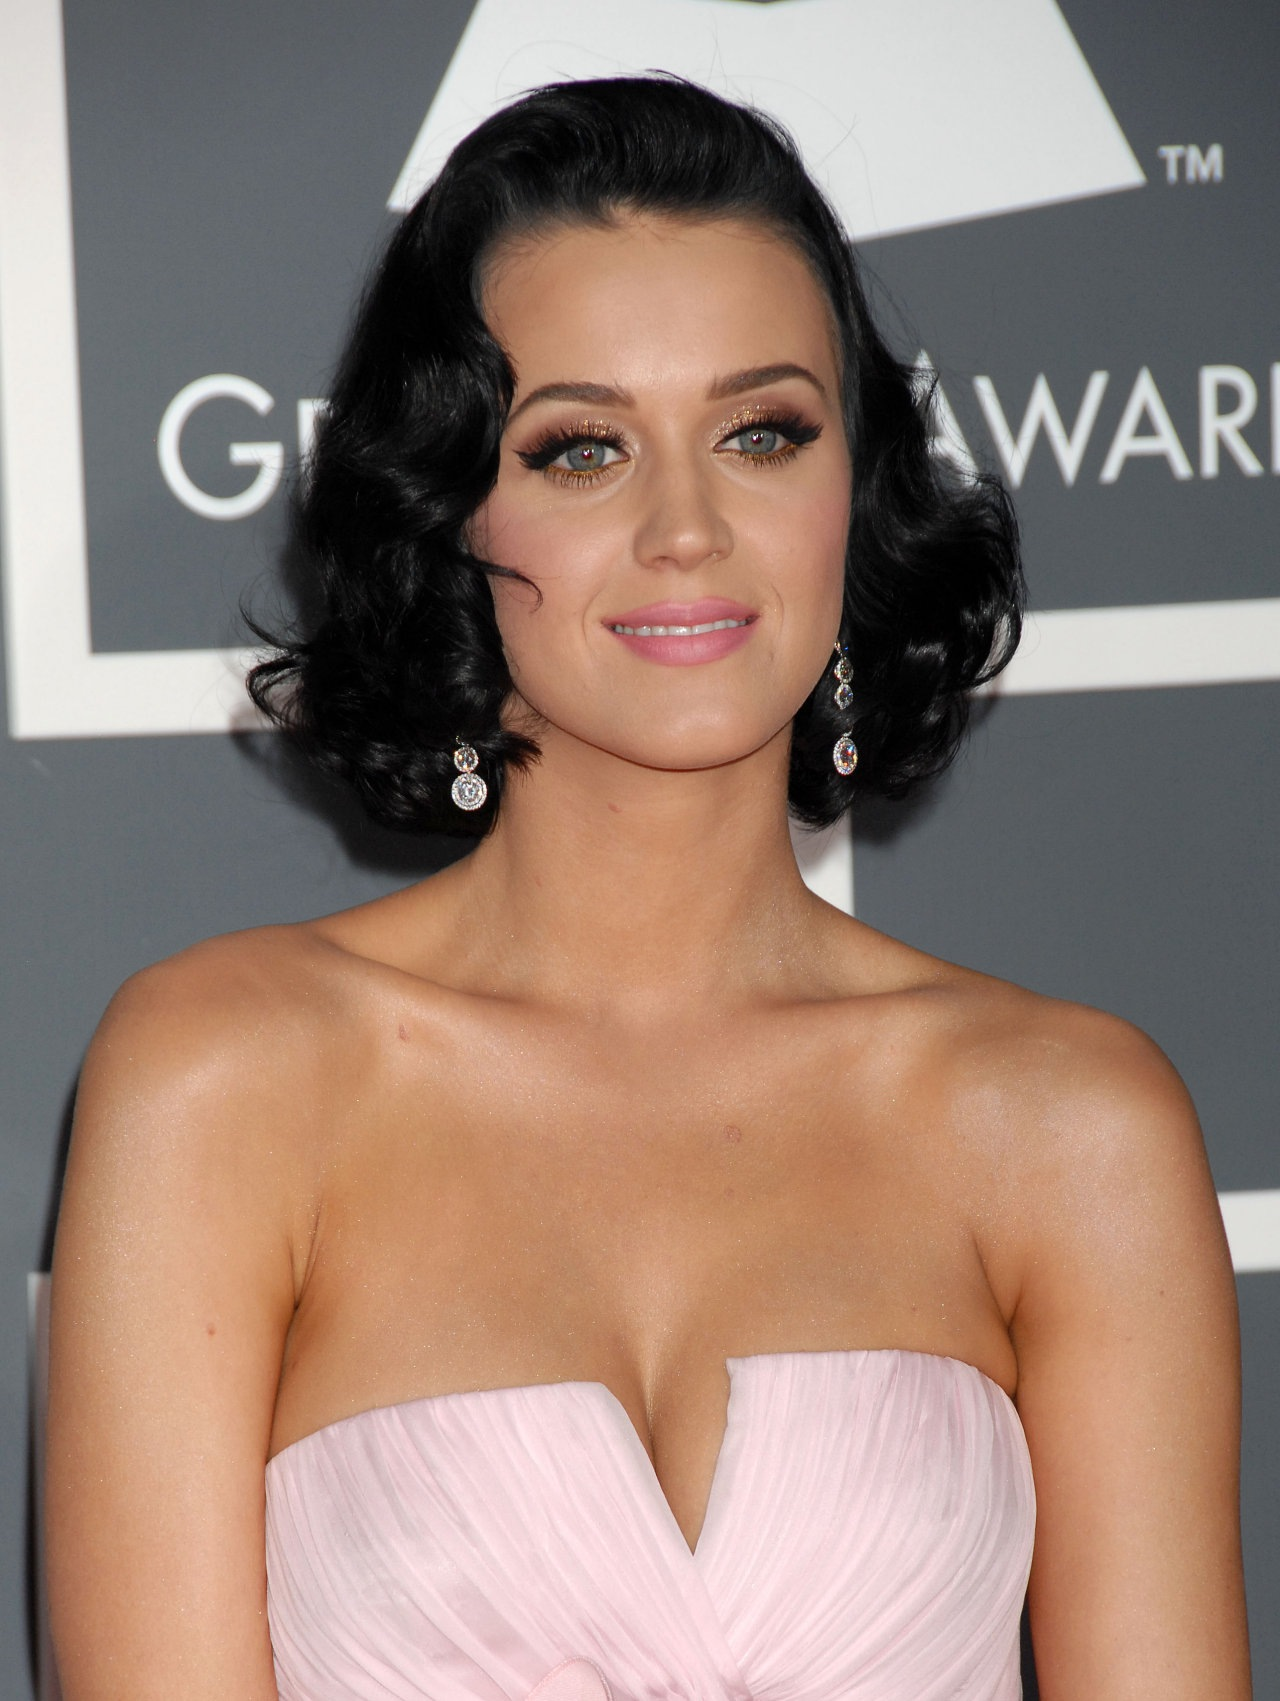 pics leaked nude Katy perry